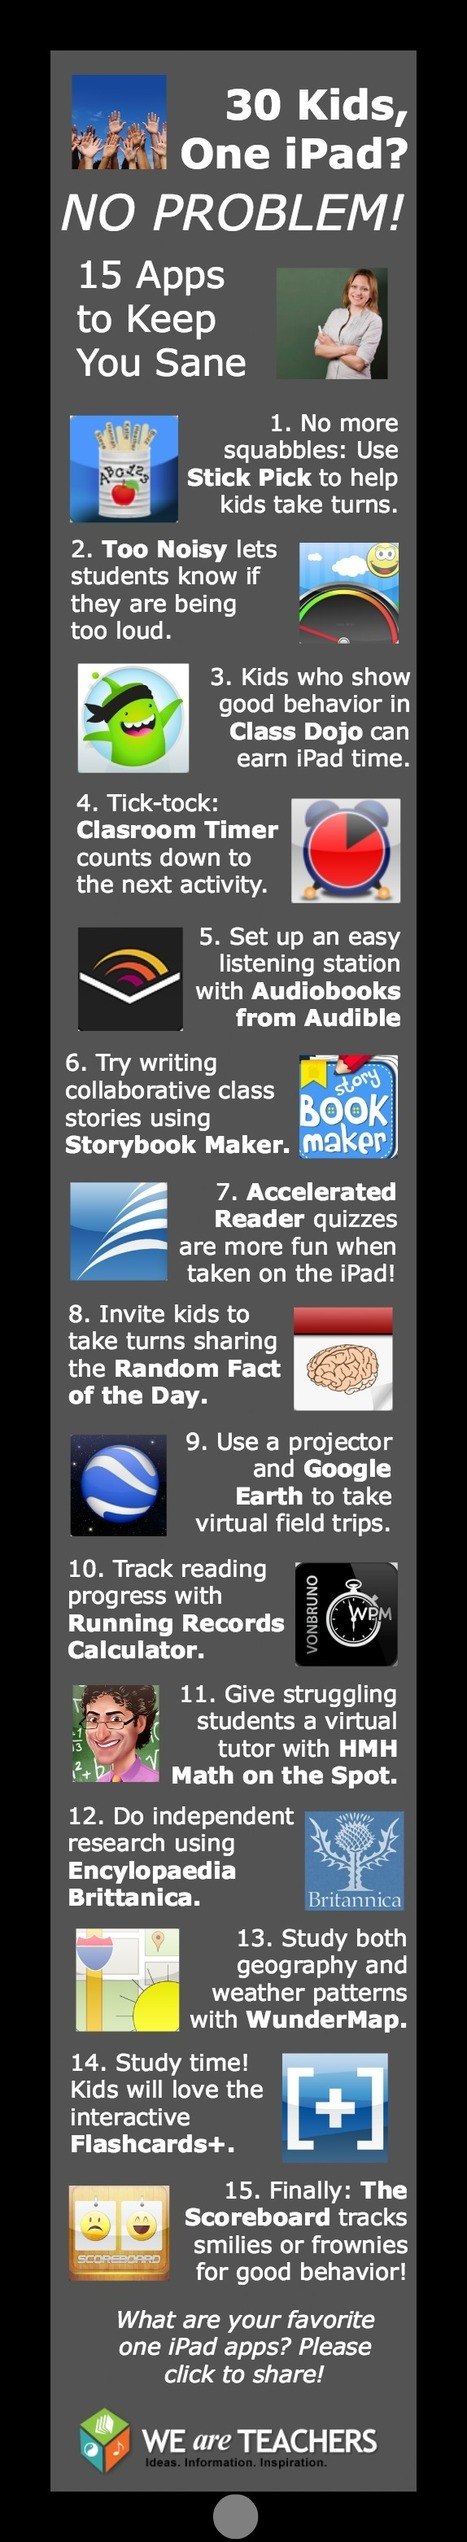 15 Apps for the One iPad Classroom - We Are Teachers | iPad in the Classroom | Scoop.it